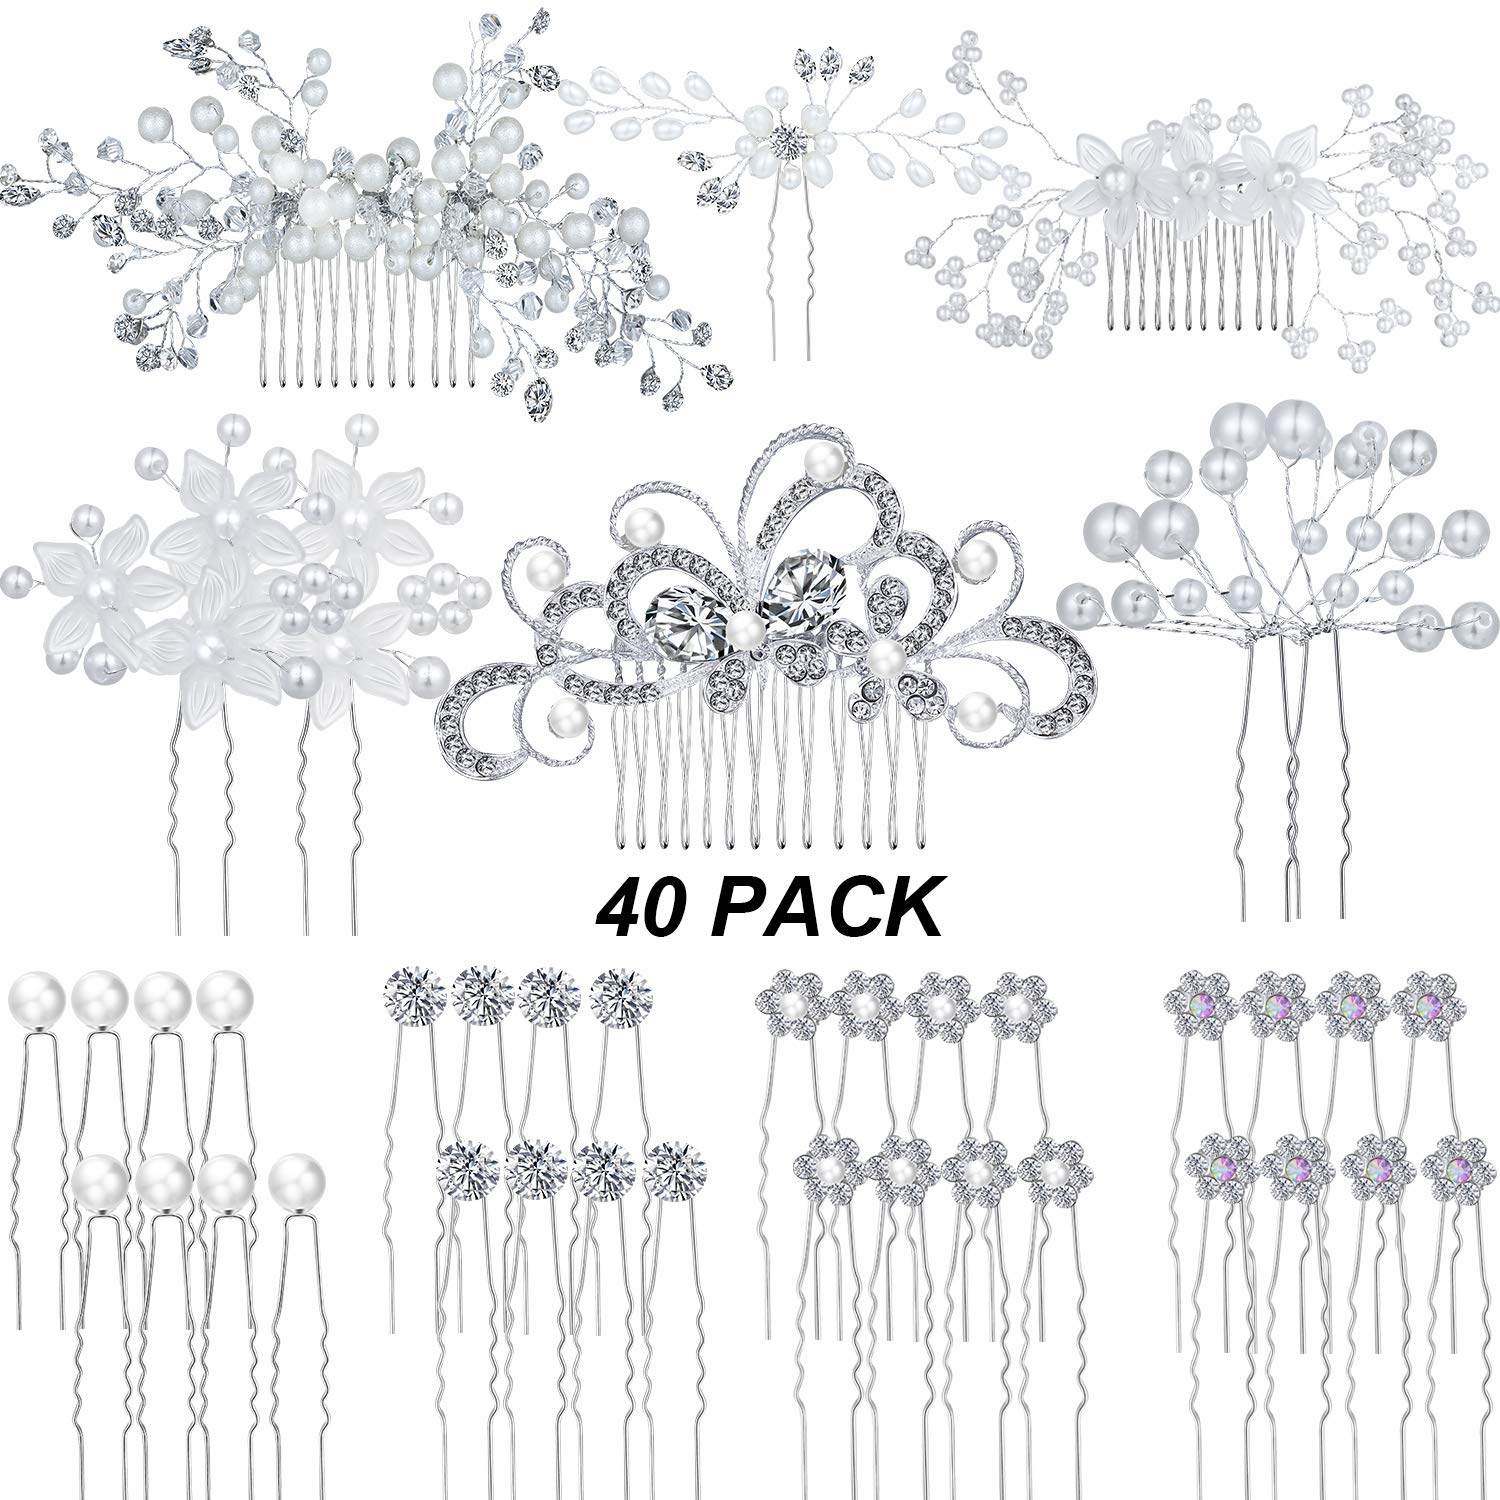 40 PCS Wedding Hair Combs Bridal Hair Side Combs U Shaped Hair Pins Crytal Pearl Hair Accessories for Bridesmaids, 10 Styles by WILLBOND